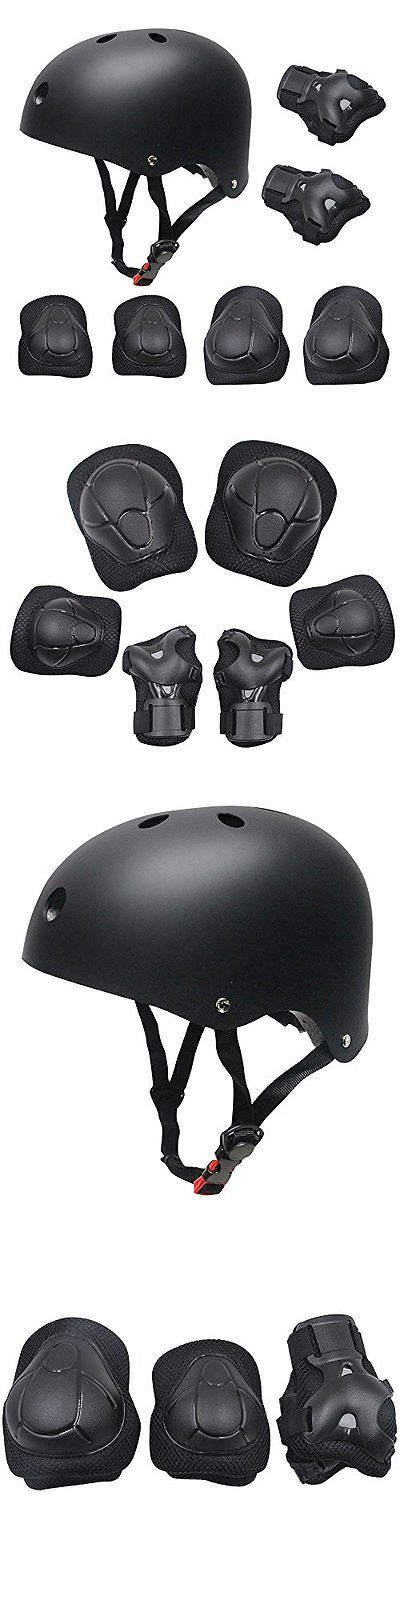 Protective Gear 36317: [Kuyou]Kids Protective Gear Set, Roller Skating Skateboard Bmx Scooter Cycling -> BUY IT NOW ONLY: $33.71 on eBay!